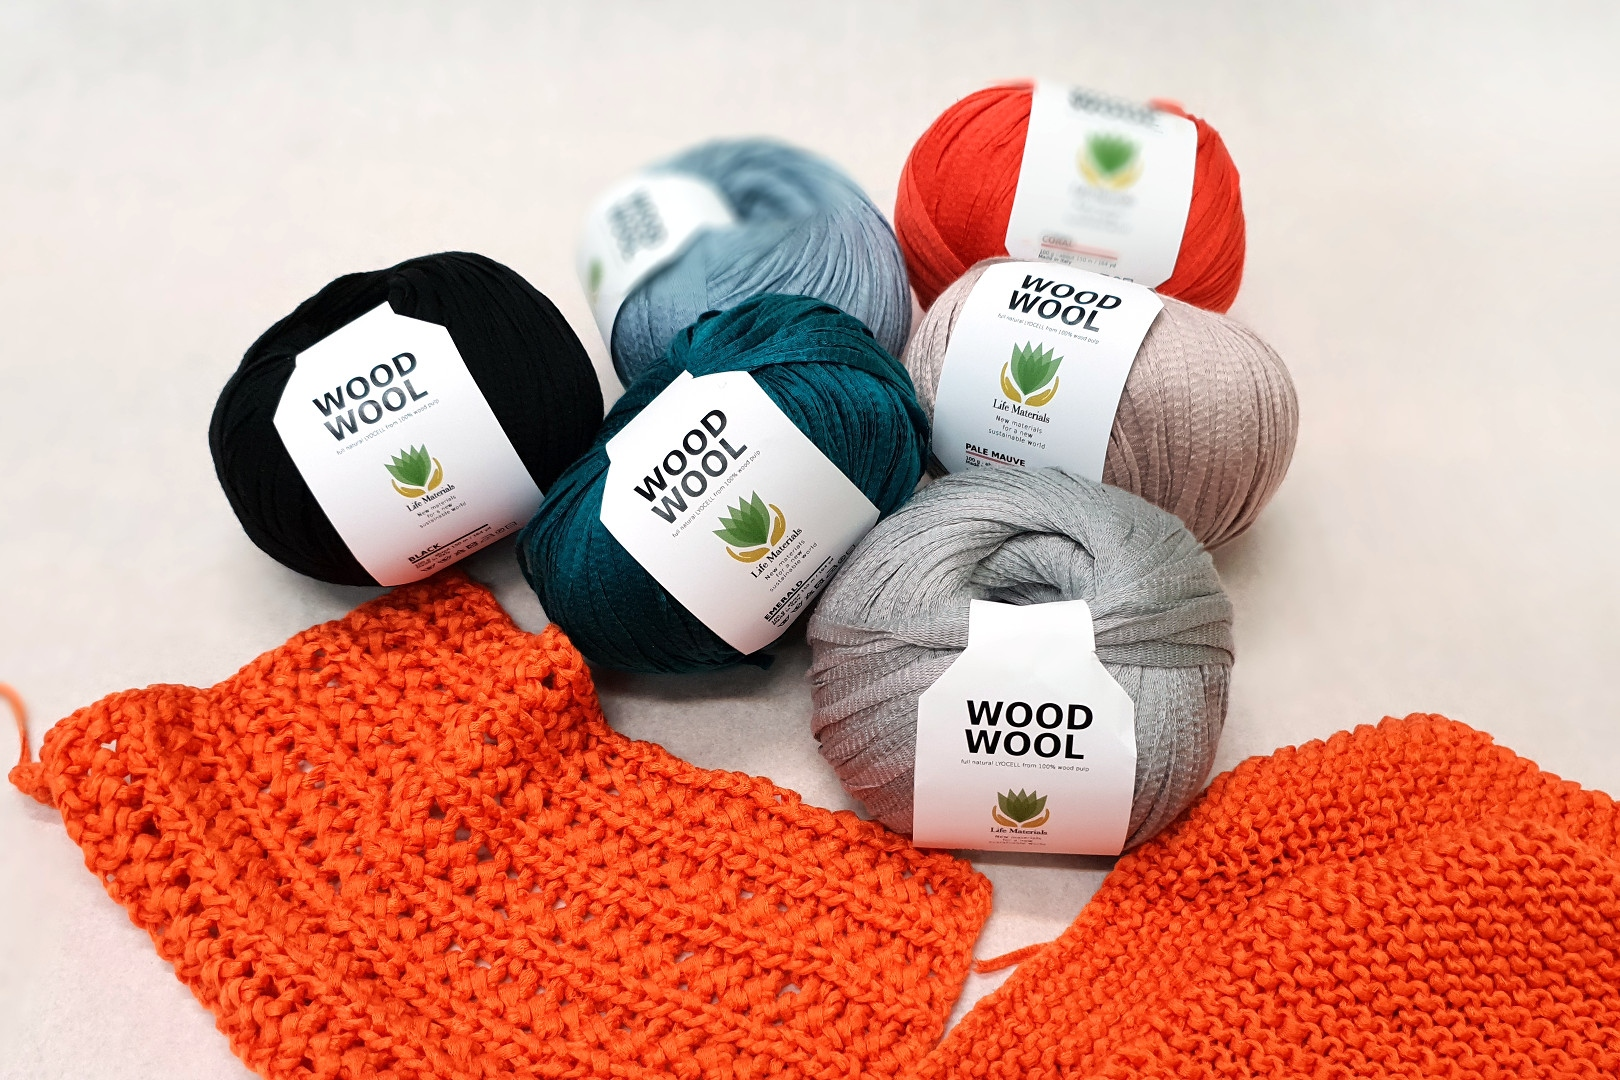 Wood Wool – Knitting yarn 100% from wood pulp Image